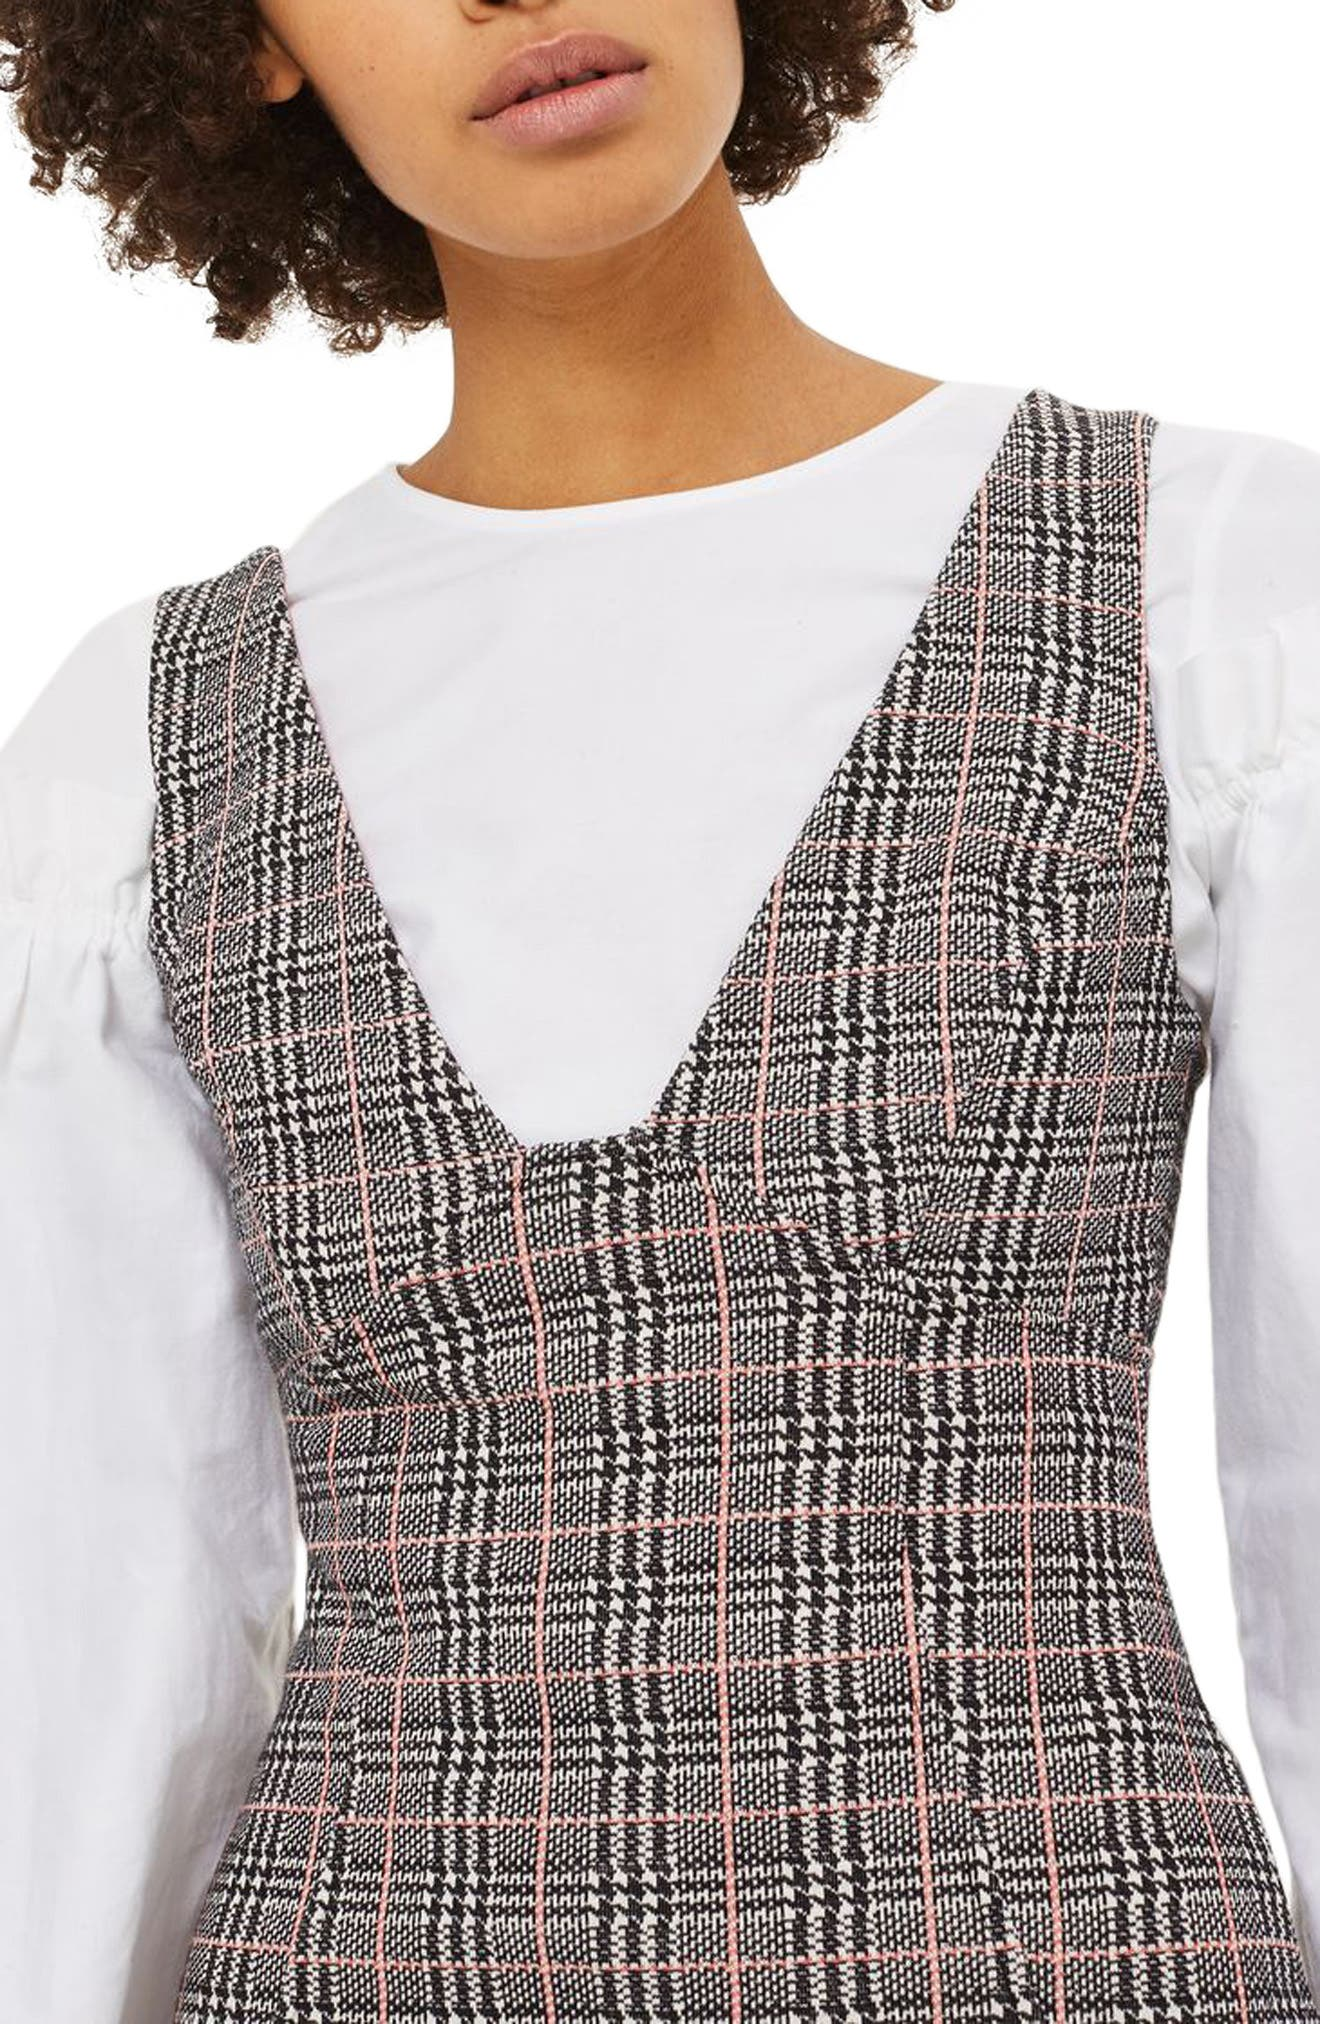 Plaid A-Line Pinafore Dress,                             Alternate thumbnail 3, color,                             001